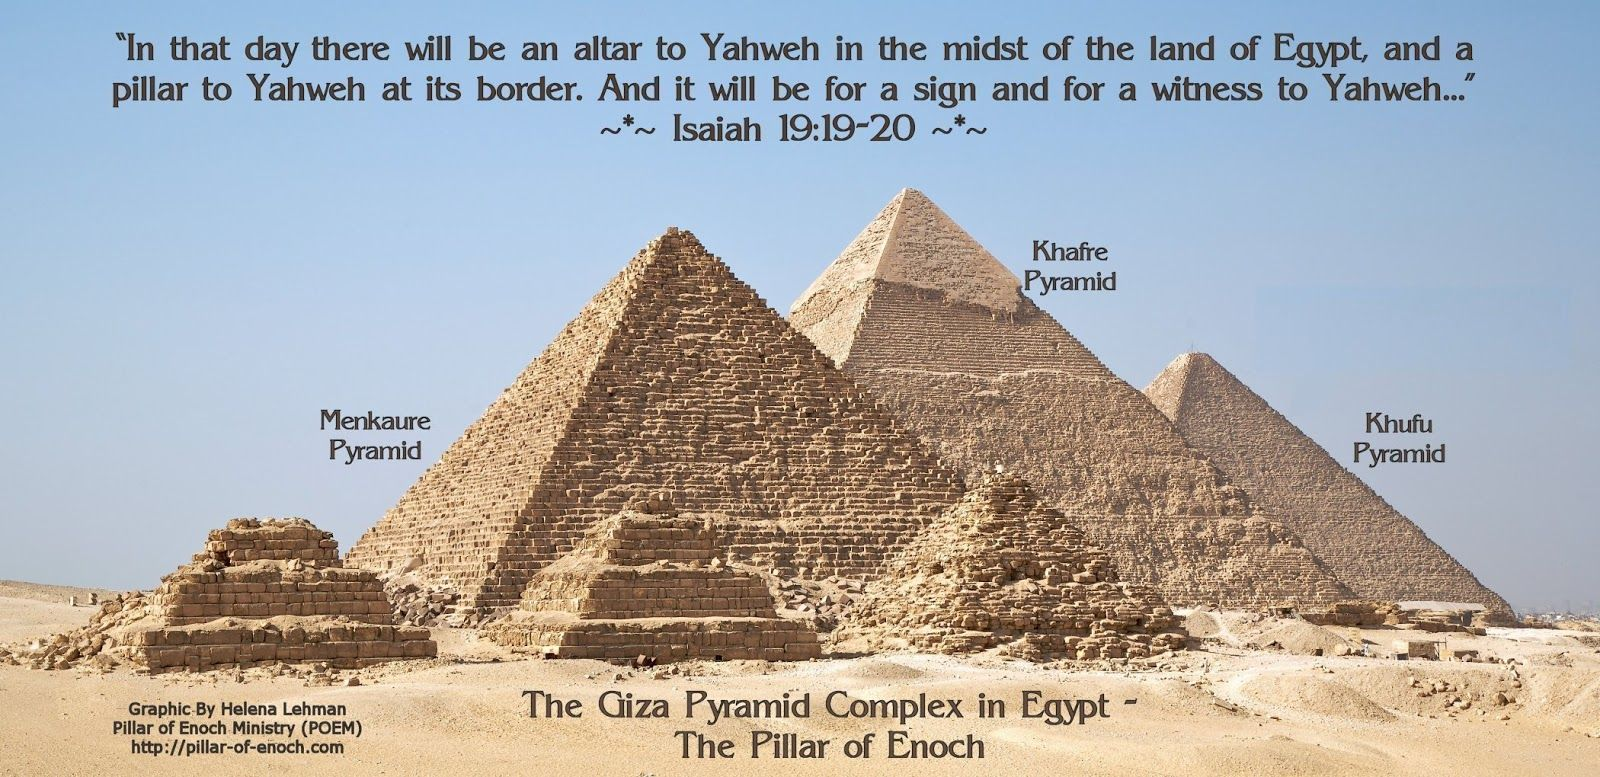 Pyramids, Great pyramid of giza, Pyramids of giza